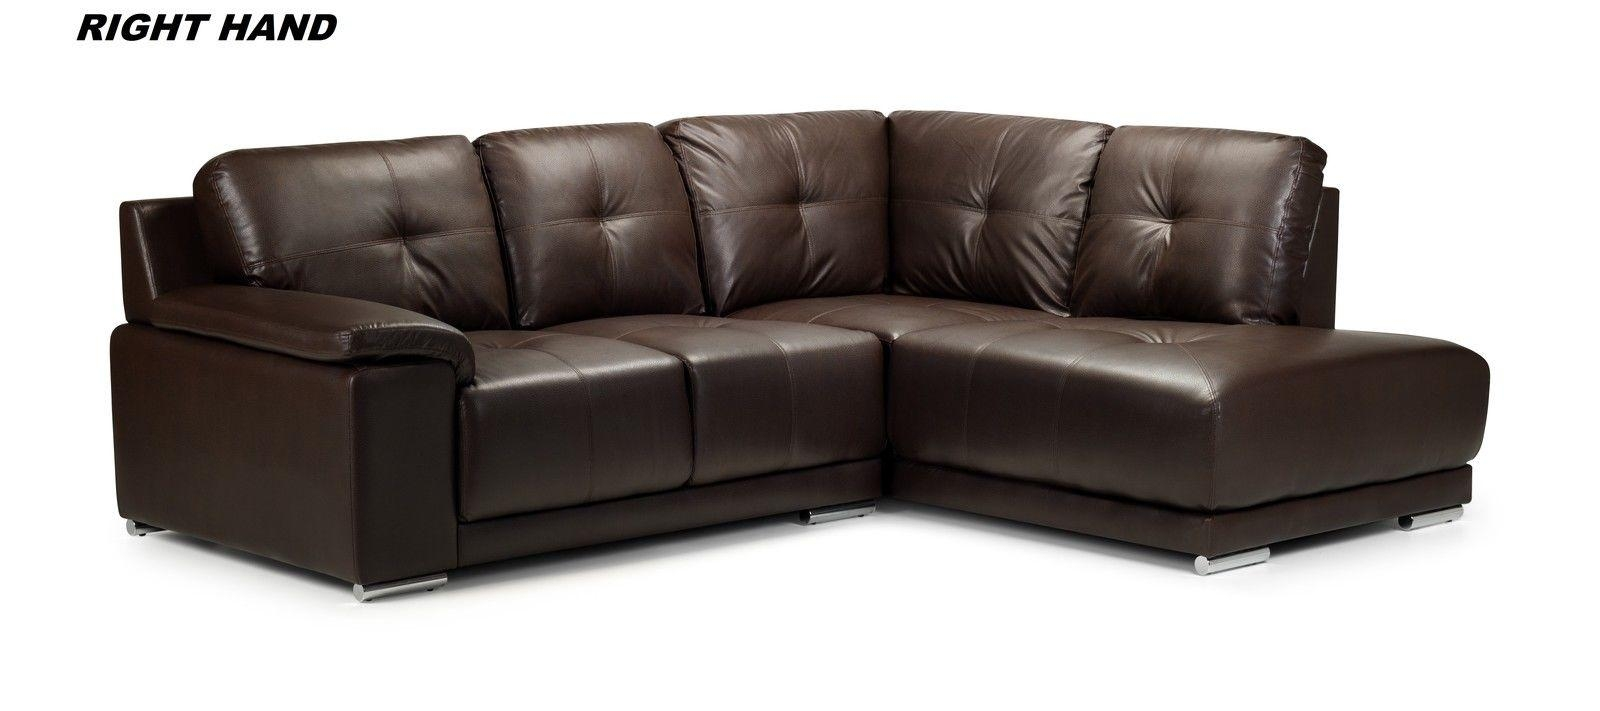 Leather Corner Sofas And Home Leather Reclining Sofas Houston With Regard To Black Leather Corner Sofas (View 15 of 20)